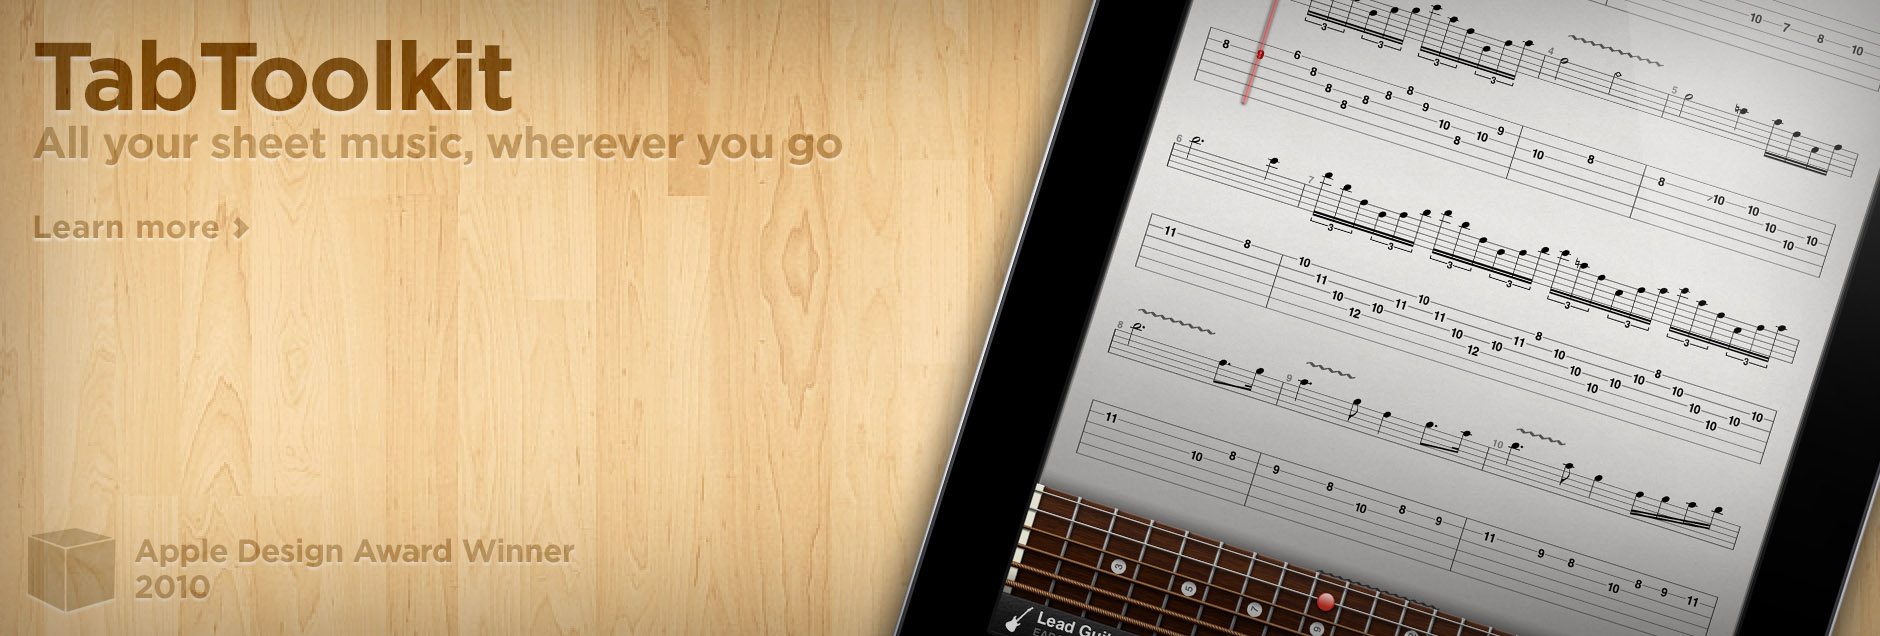 TabToolkit - All your sheet music wherever you go